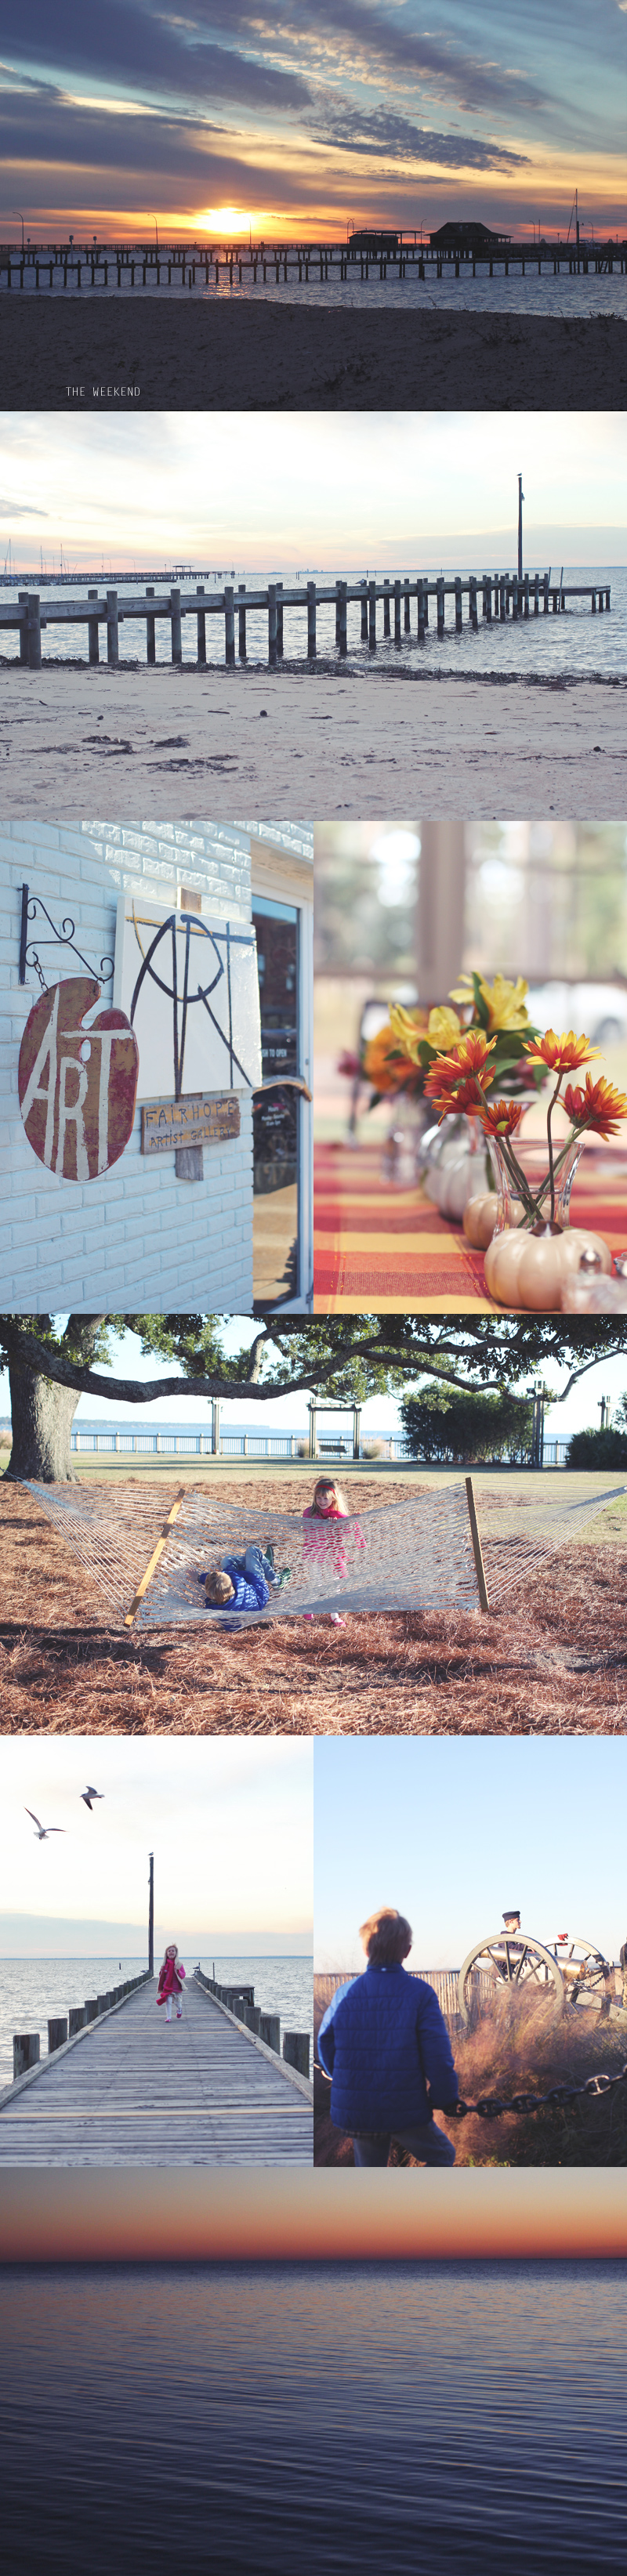 thanksgiving weekend in fairhope, alabama